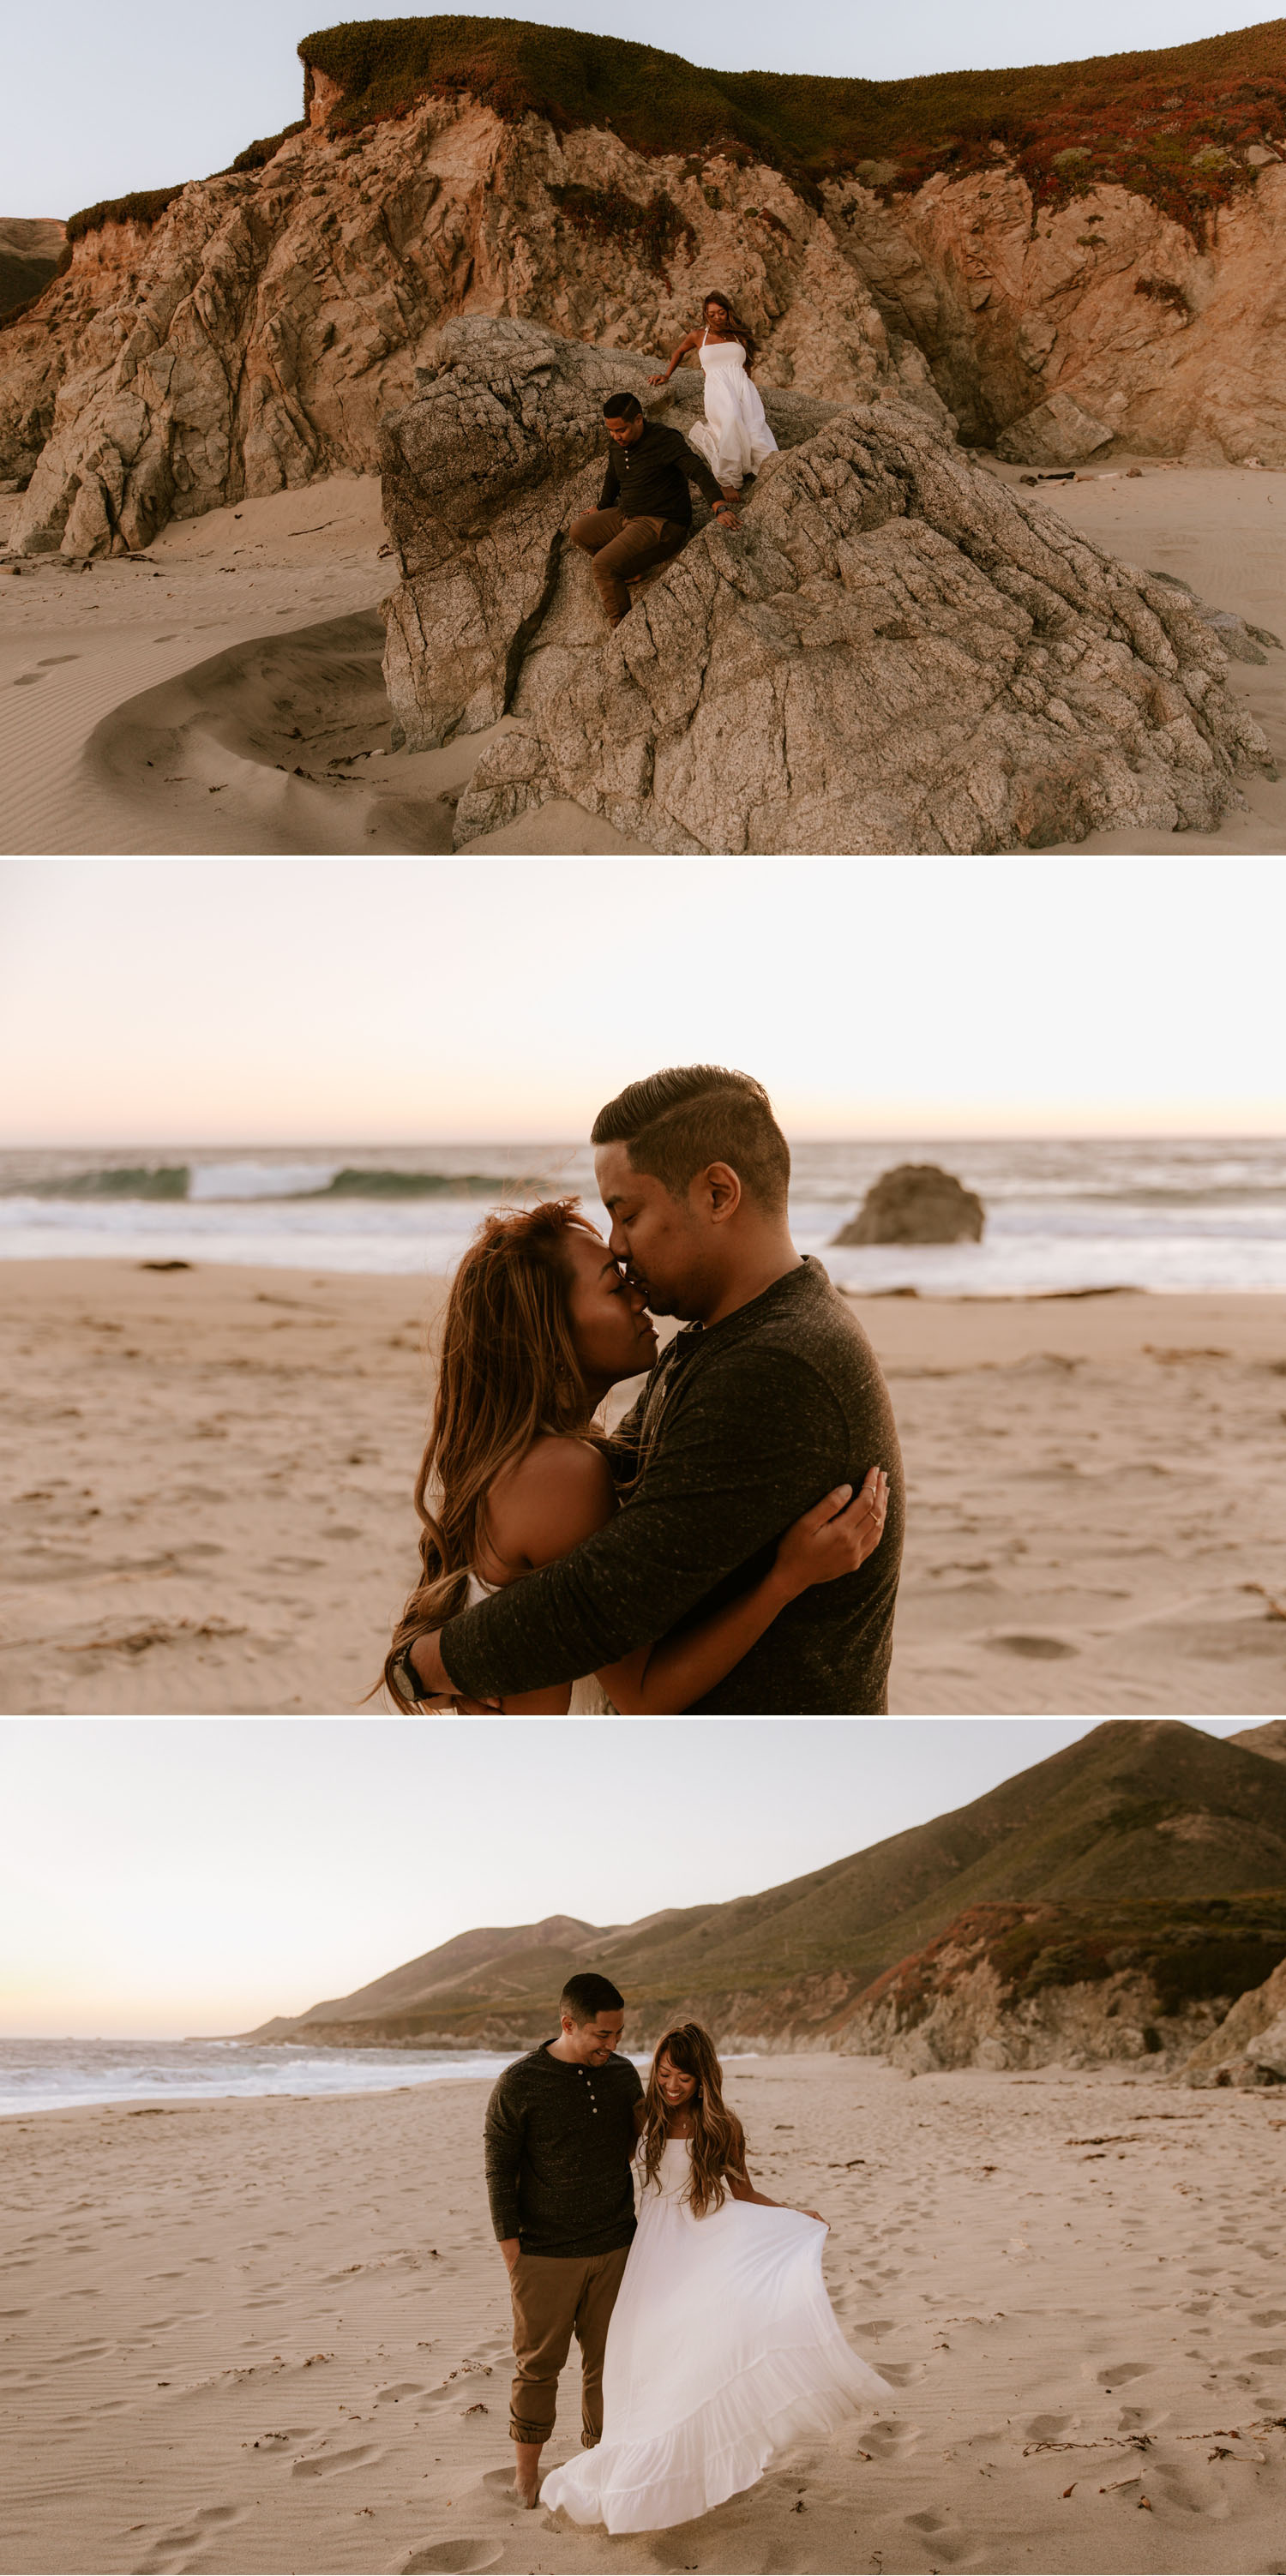 Coastal engagement session in Big Sur, California by Paige Nelson